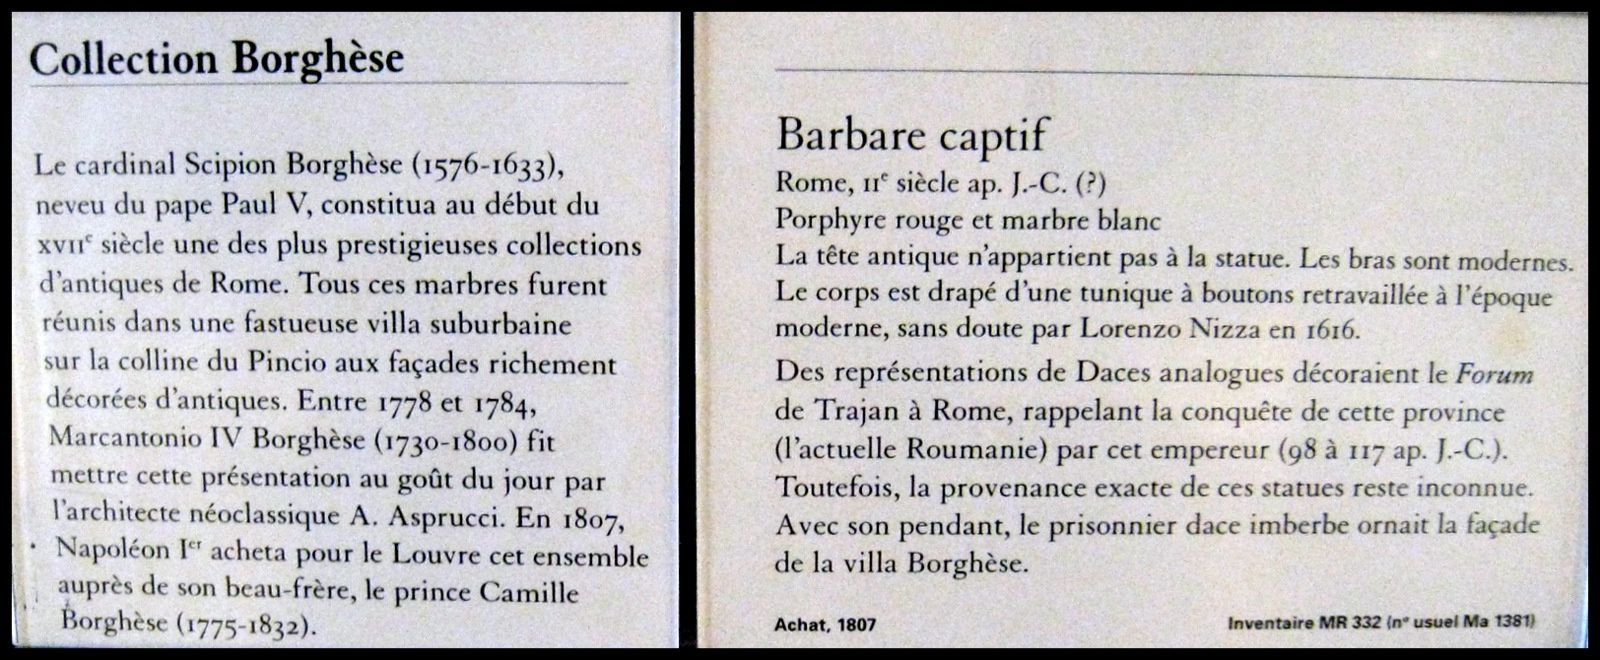 Barbares captifs, collection Borghèse